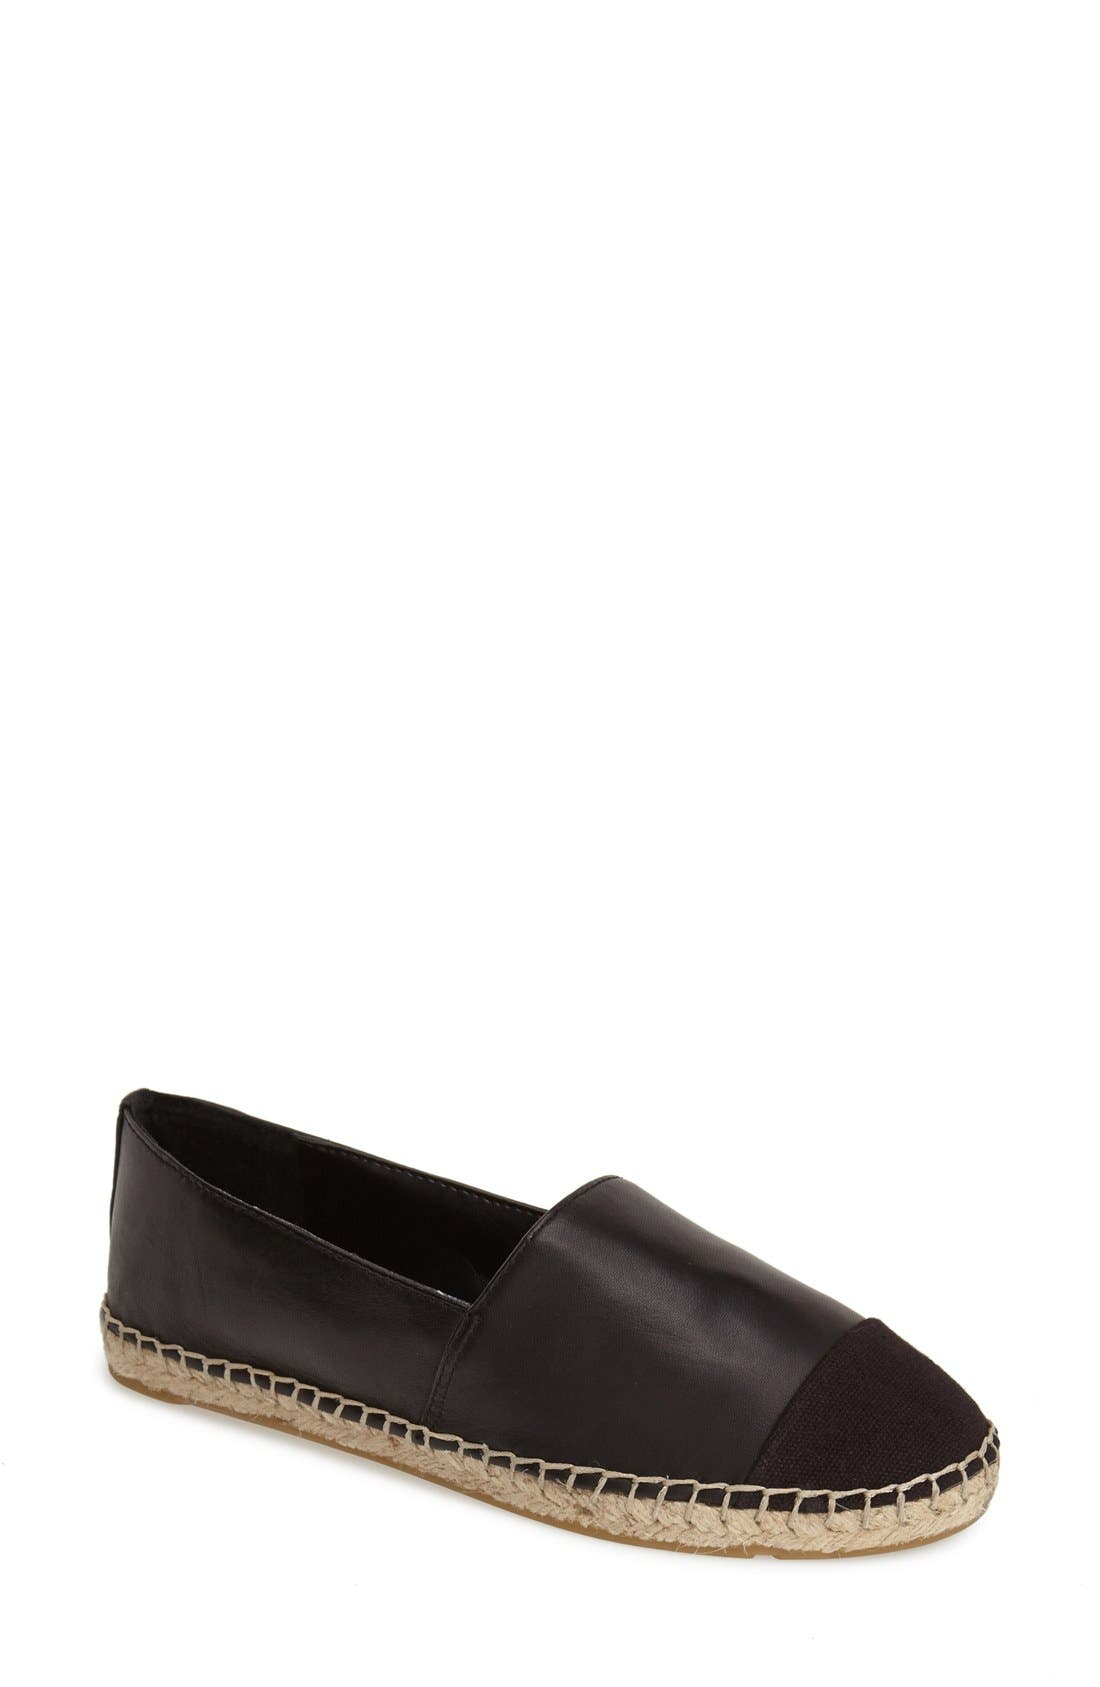 Alternate Image 1 Selected - Vince Camuto 'Dally' Leather Espadrille Flat (Women)